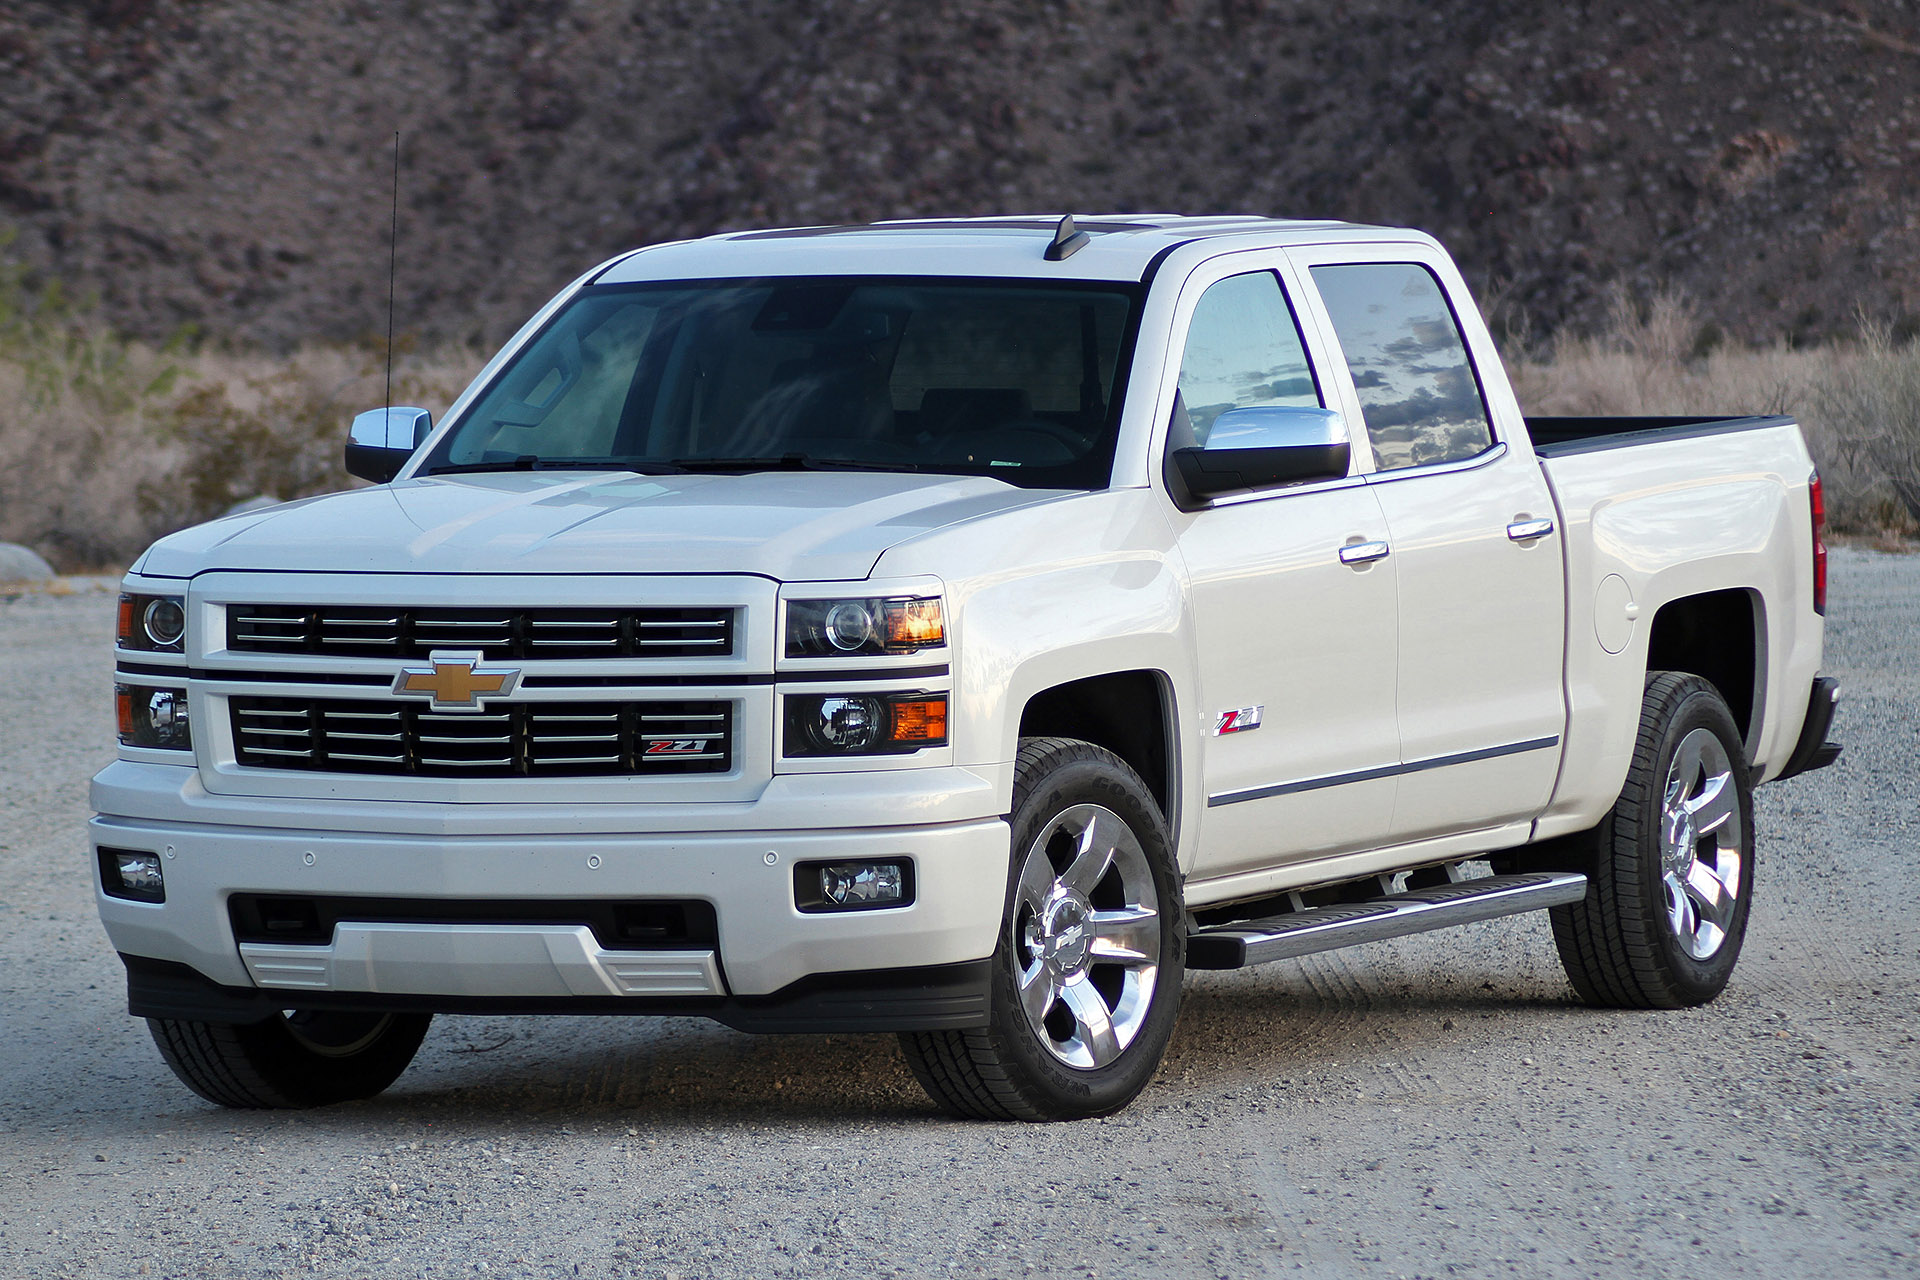 chevy silverado. Black Bedroom Furniture Sets. Home Design Ideas